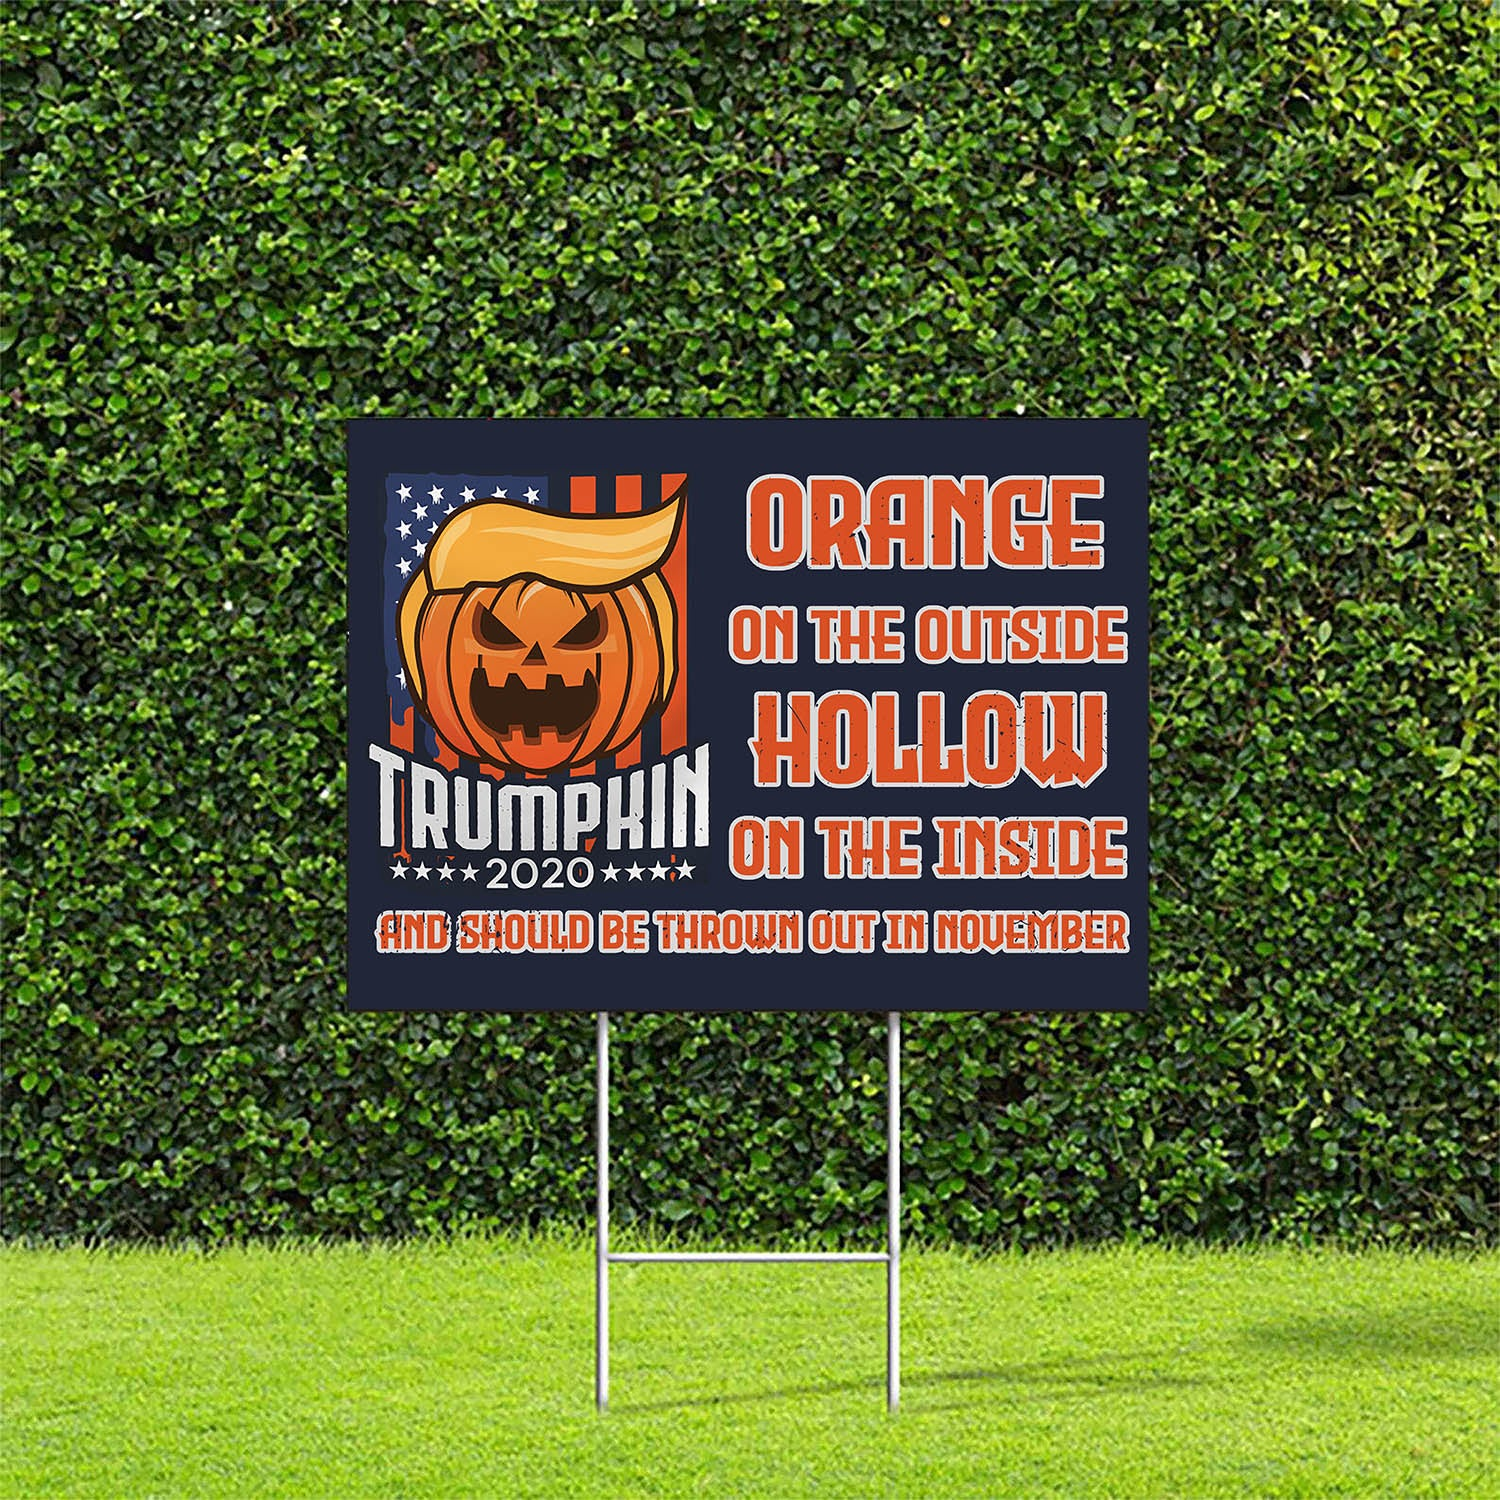 Yard Sign - Trumpkin 2020, Should Be Thrown Out In November - Outdoor Decoration, Election Yard Sign, Political Yard Sign - 6567